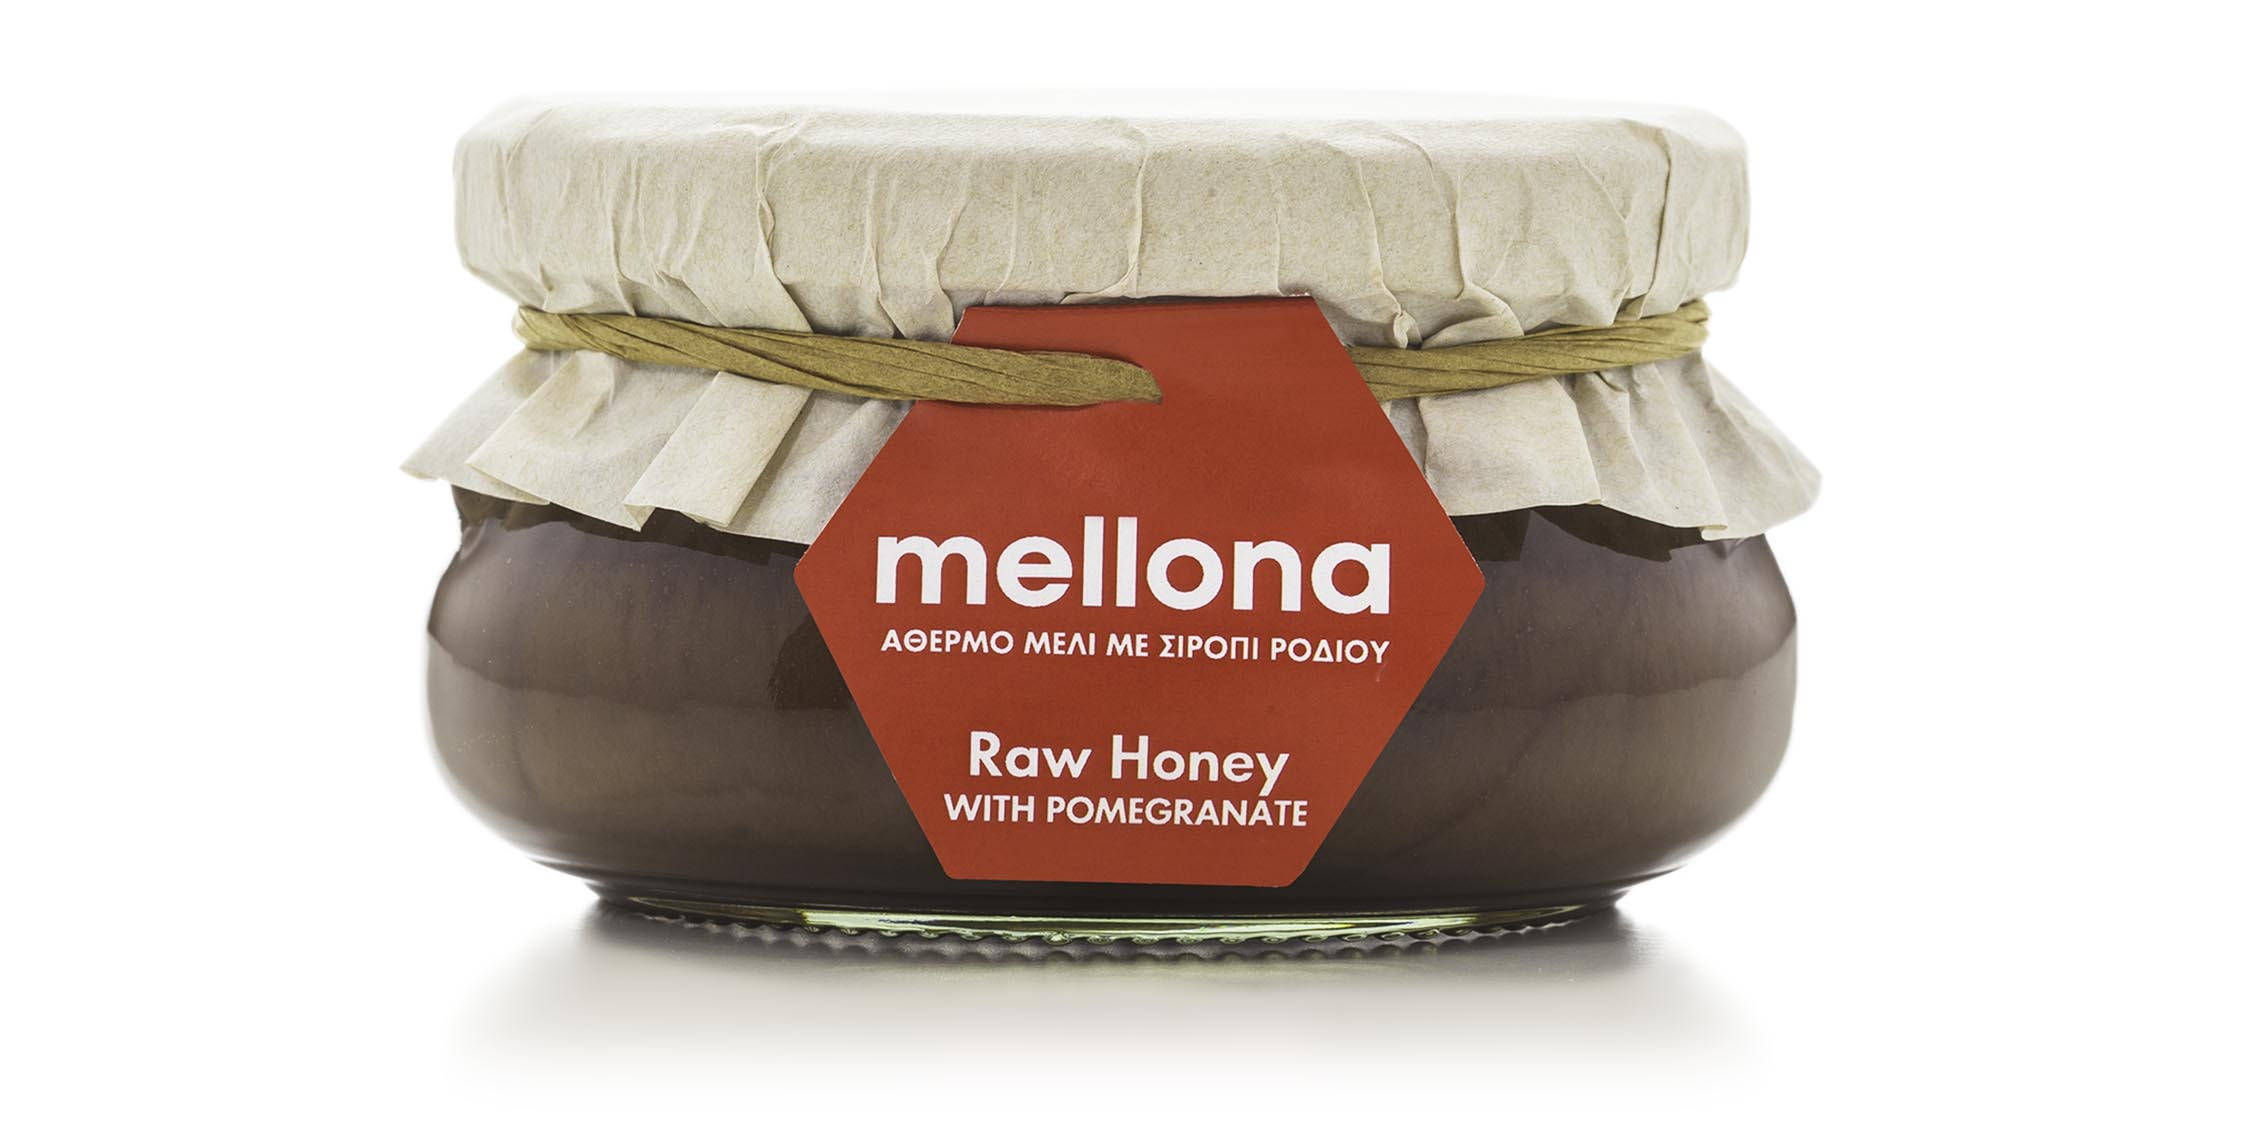 Mellona honey spreads - Raw Honey with Pomegranate